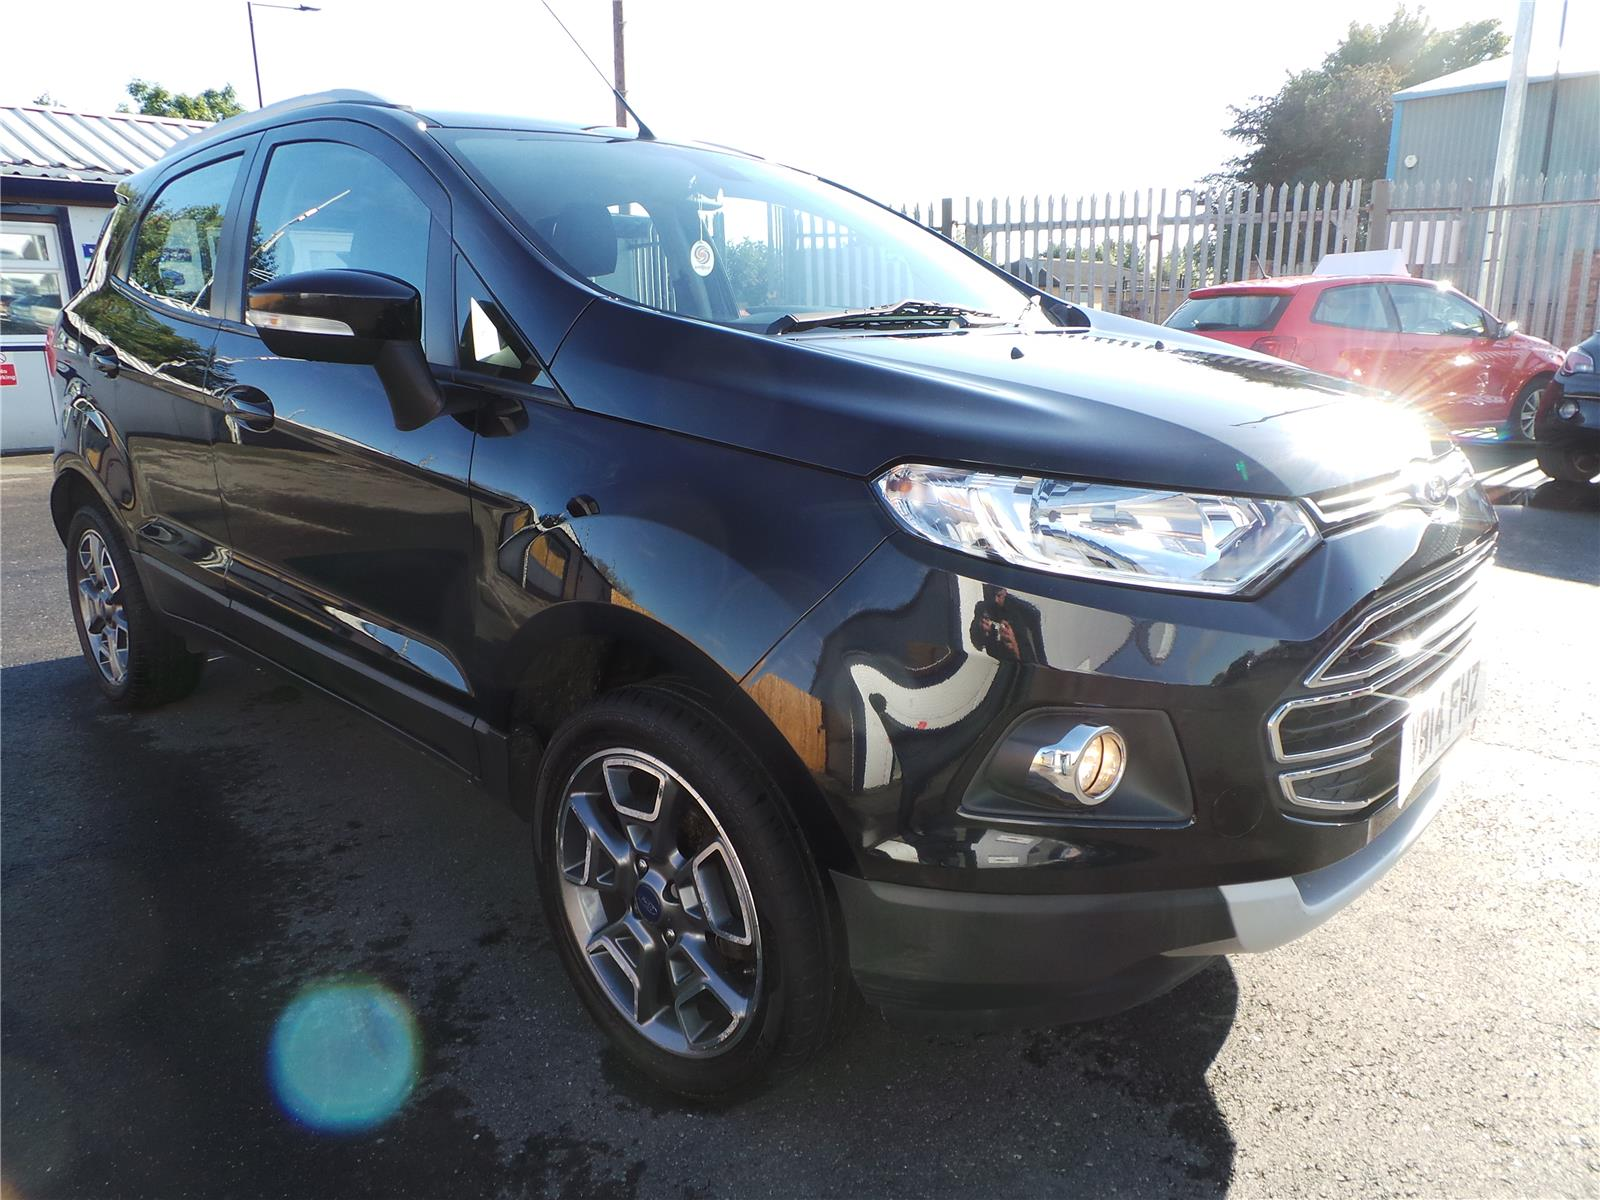 2014 FORD ECOSPORT TITANIUM X-PACK TDCI 1498 DIESEL MANUAL 5 Speed 5 DOOR HATCHBACK